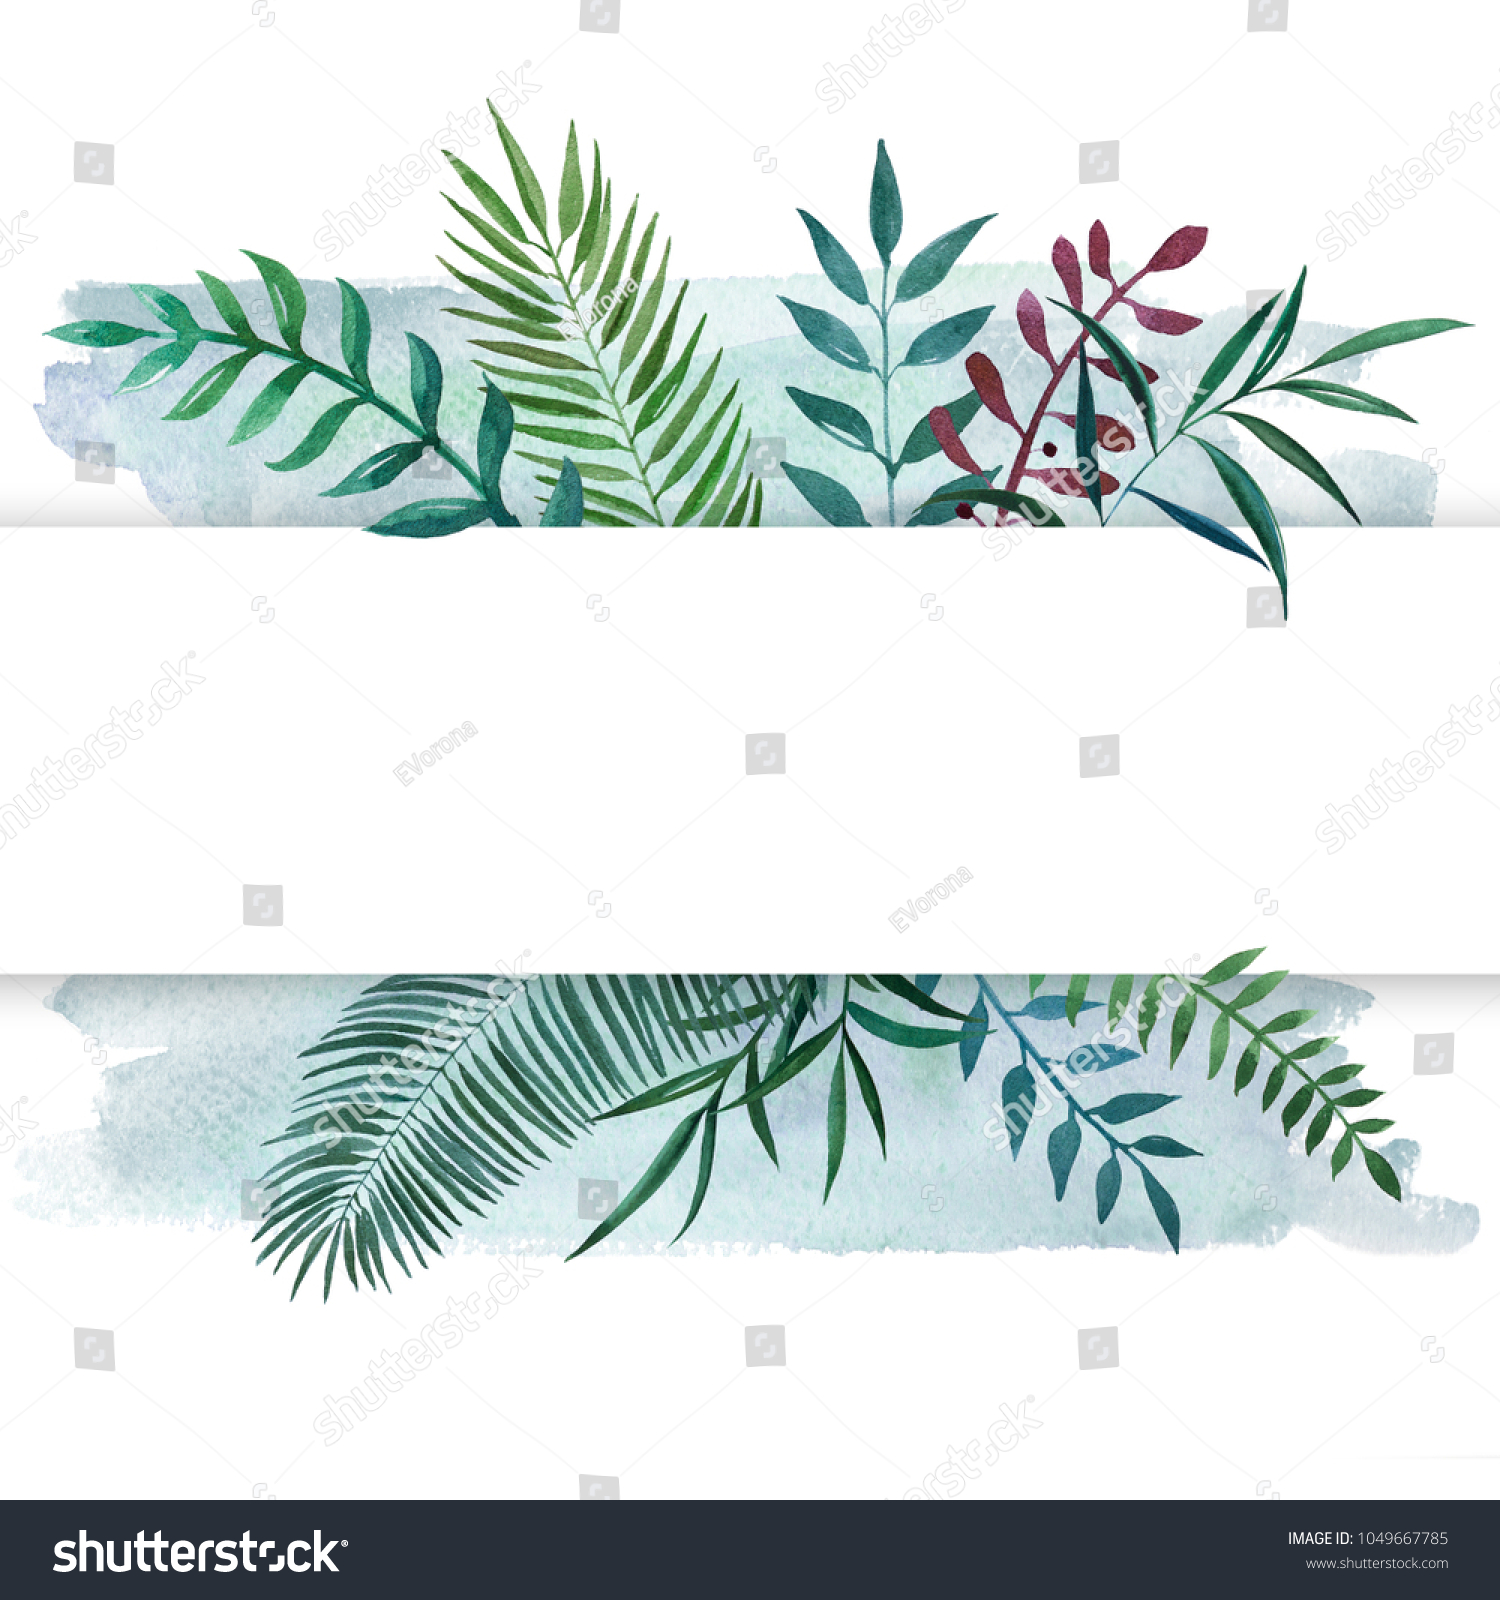 Paspartoe Hema Hand Drawn Watercolor Illustration Differents Plants Stock